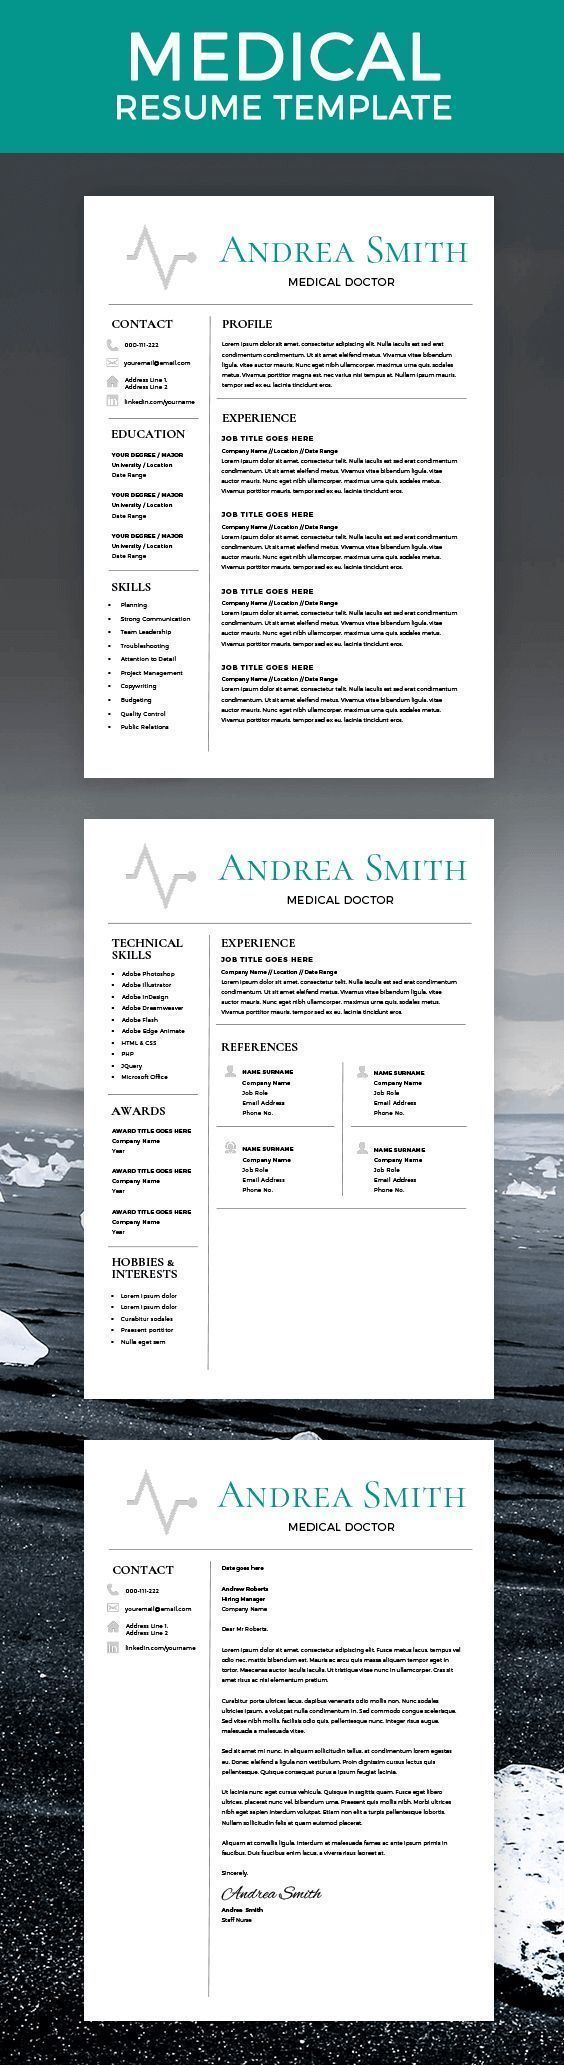 Best CV Resume Design Images On Pinterest Cv Resume - Lpn resume template free